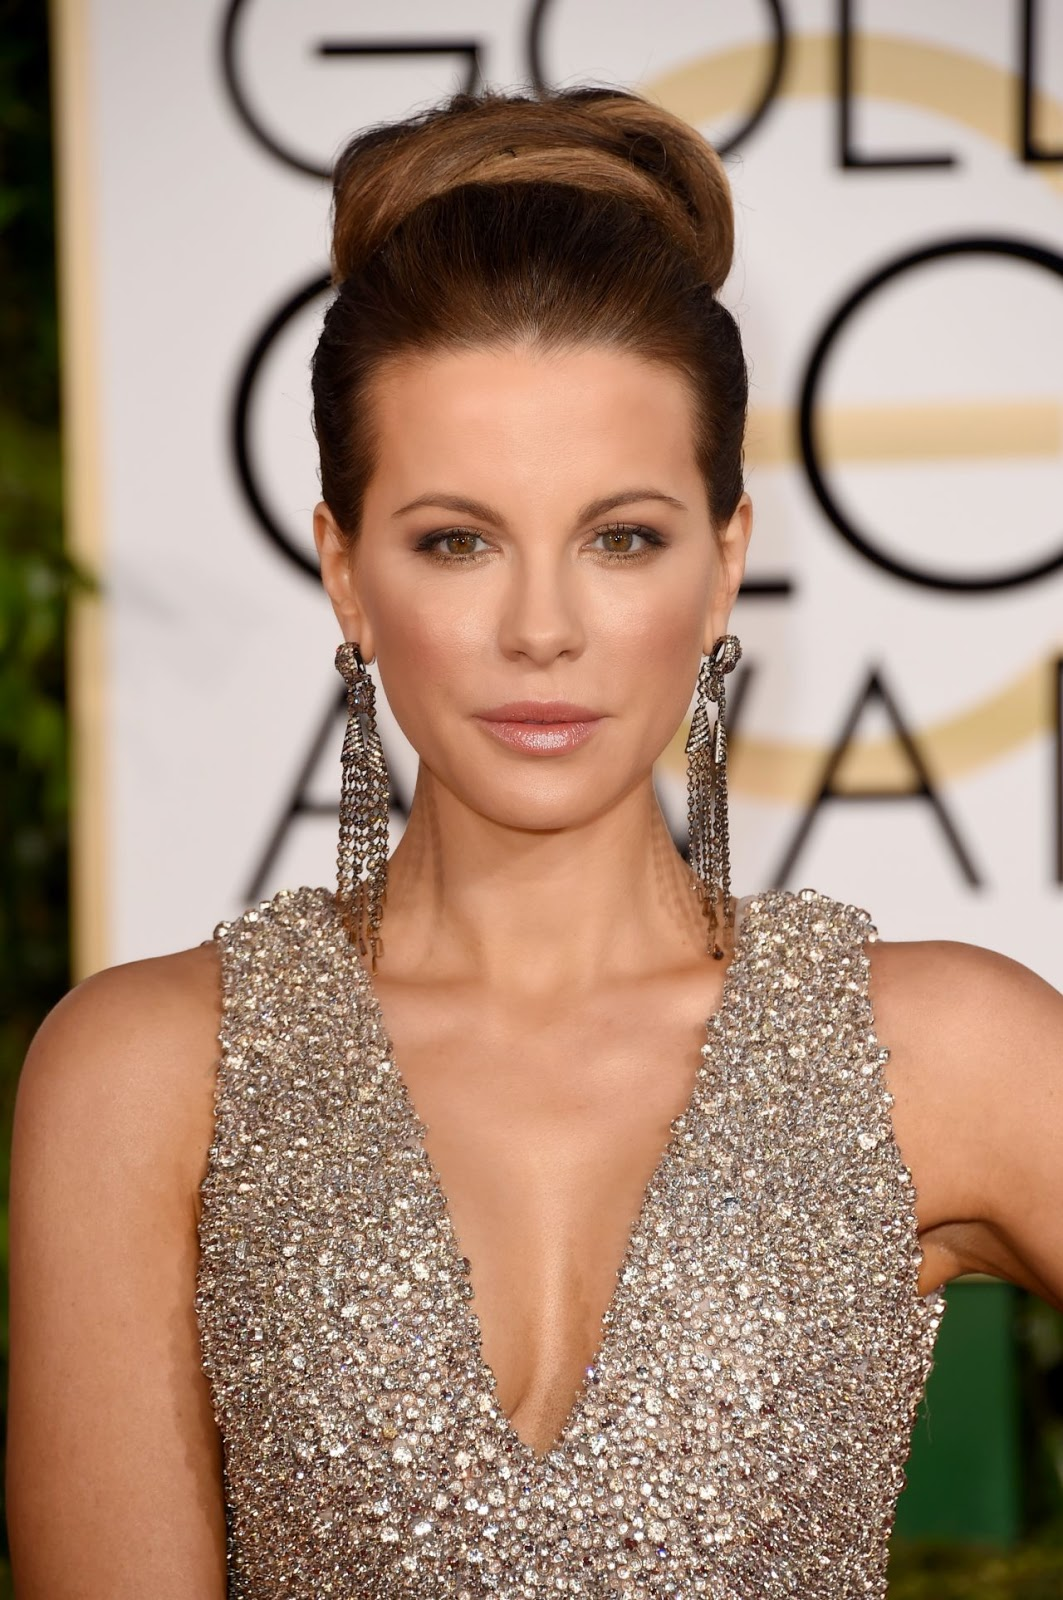 Kate Beckinsale sizzles in a Elie Saab dress at the 2015 Golden Globes